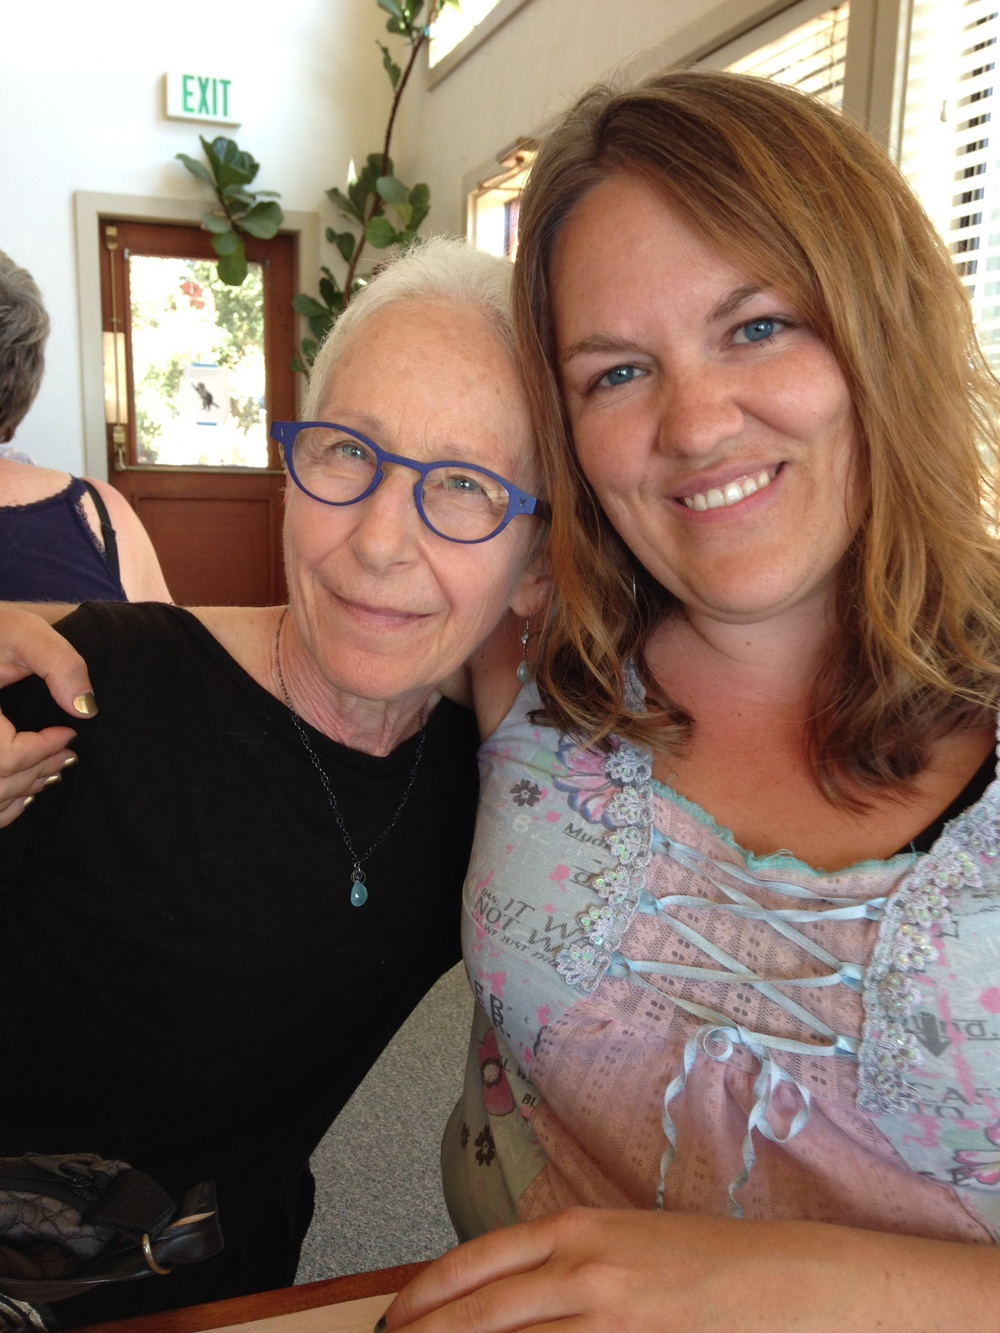 New friends.  Lorna (left) and Jill met at the American Polarity Therapy Association and Biodynamic Cranio-sacral Therapy Association conference.  We took this picture together to honor our new connection.  Jill practices Polarity Therapy, and Lorna practices Biodynamic Cranio-sacral Therapy. It was a joy to meet Lorna!  September 2014 .